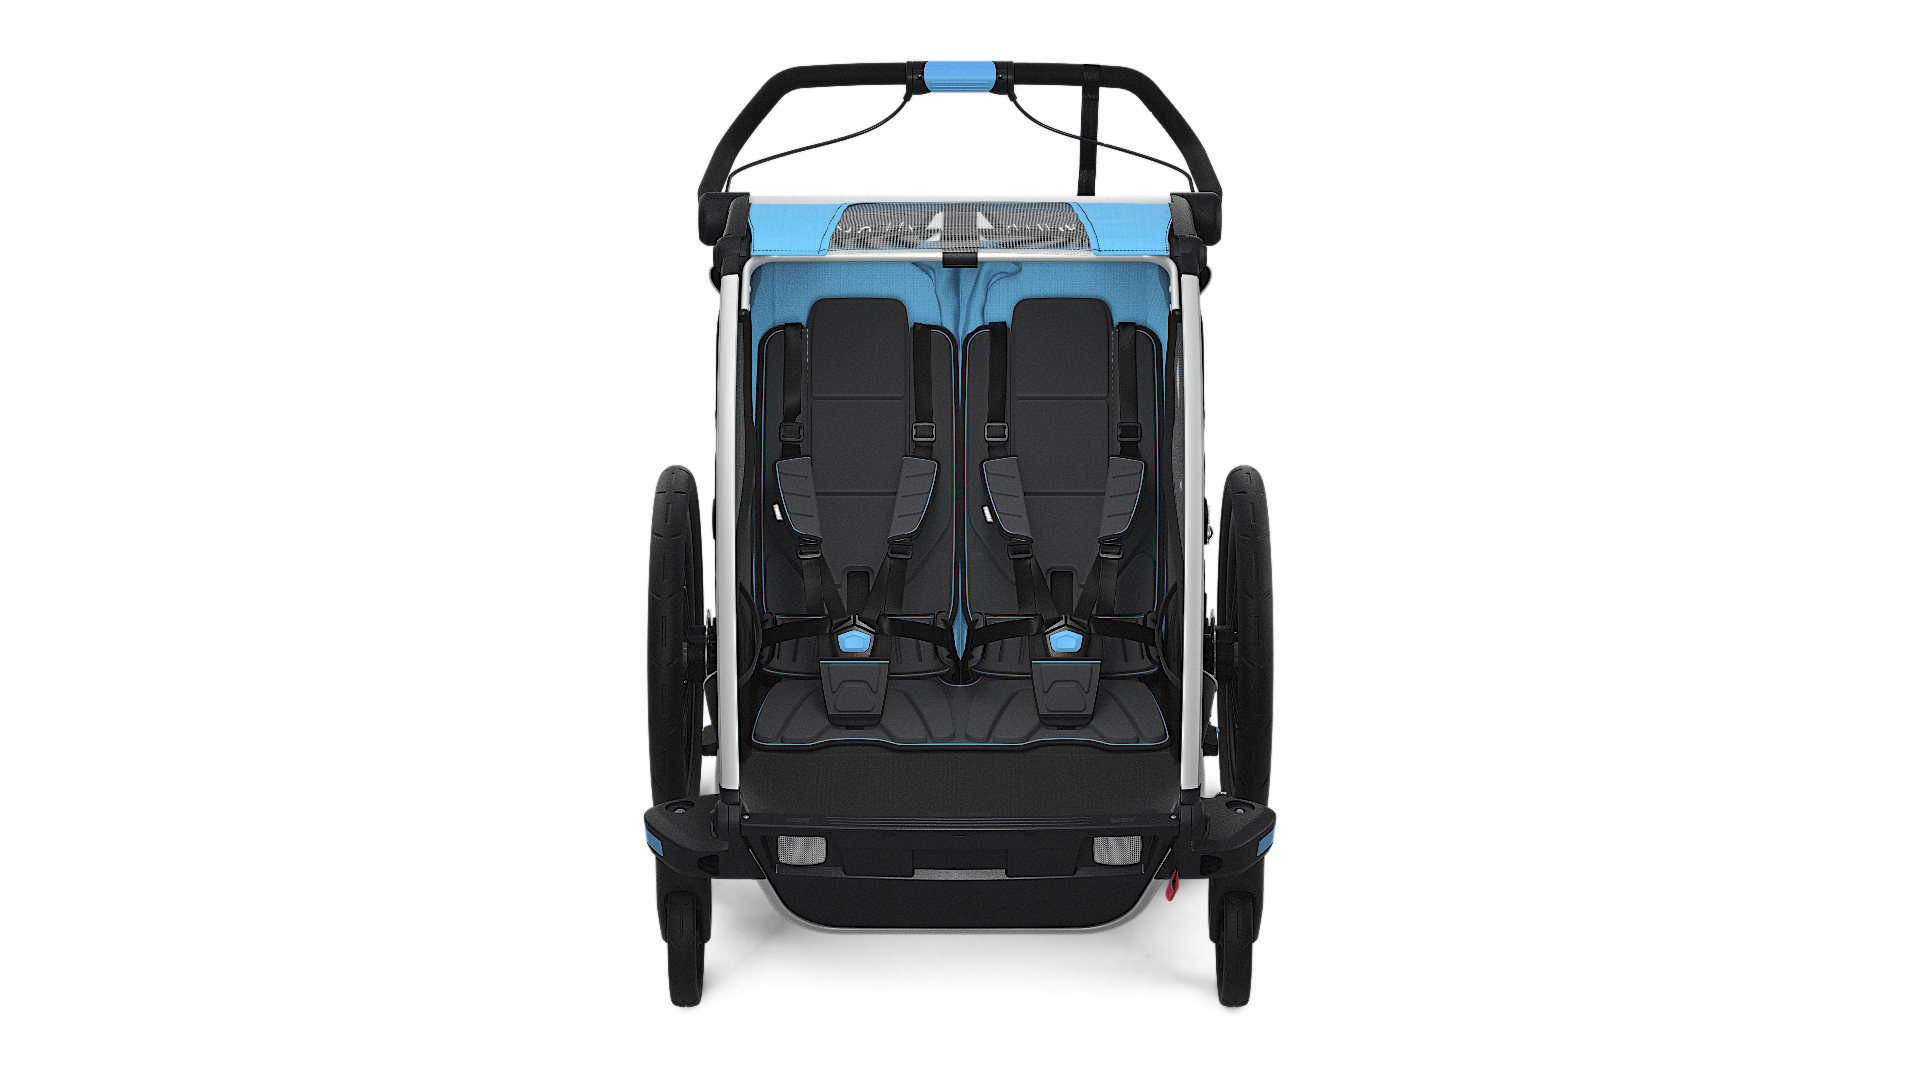 Thule_Chariot_Sport2_ThuleBlue_Strolling_FRONT_10201003